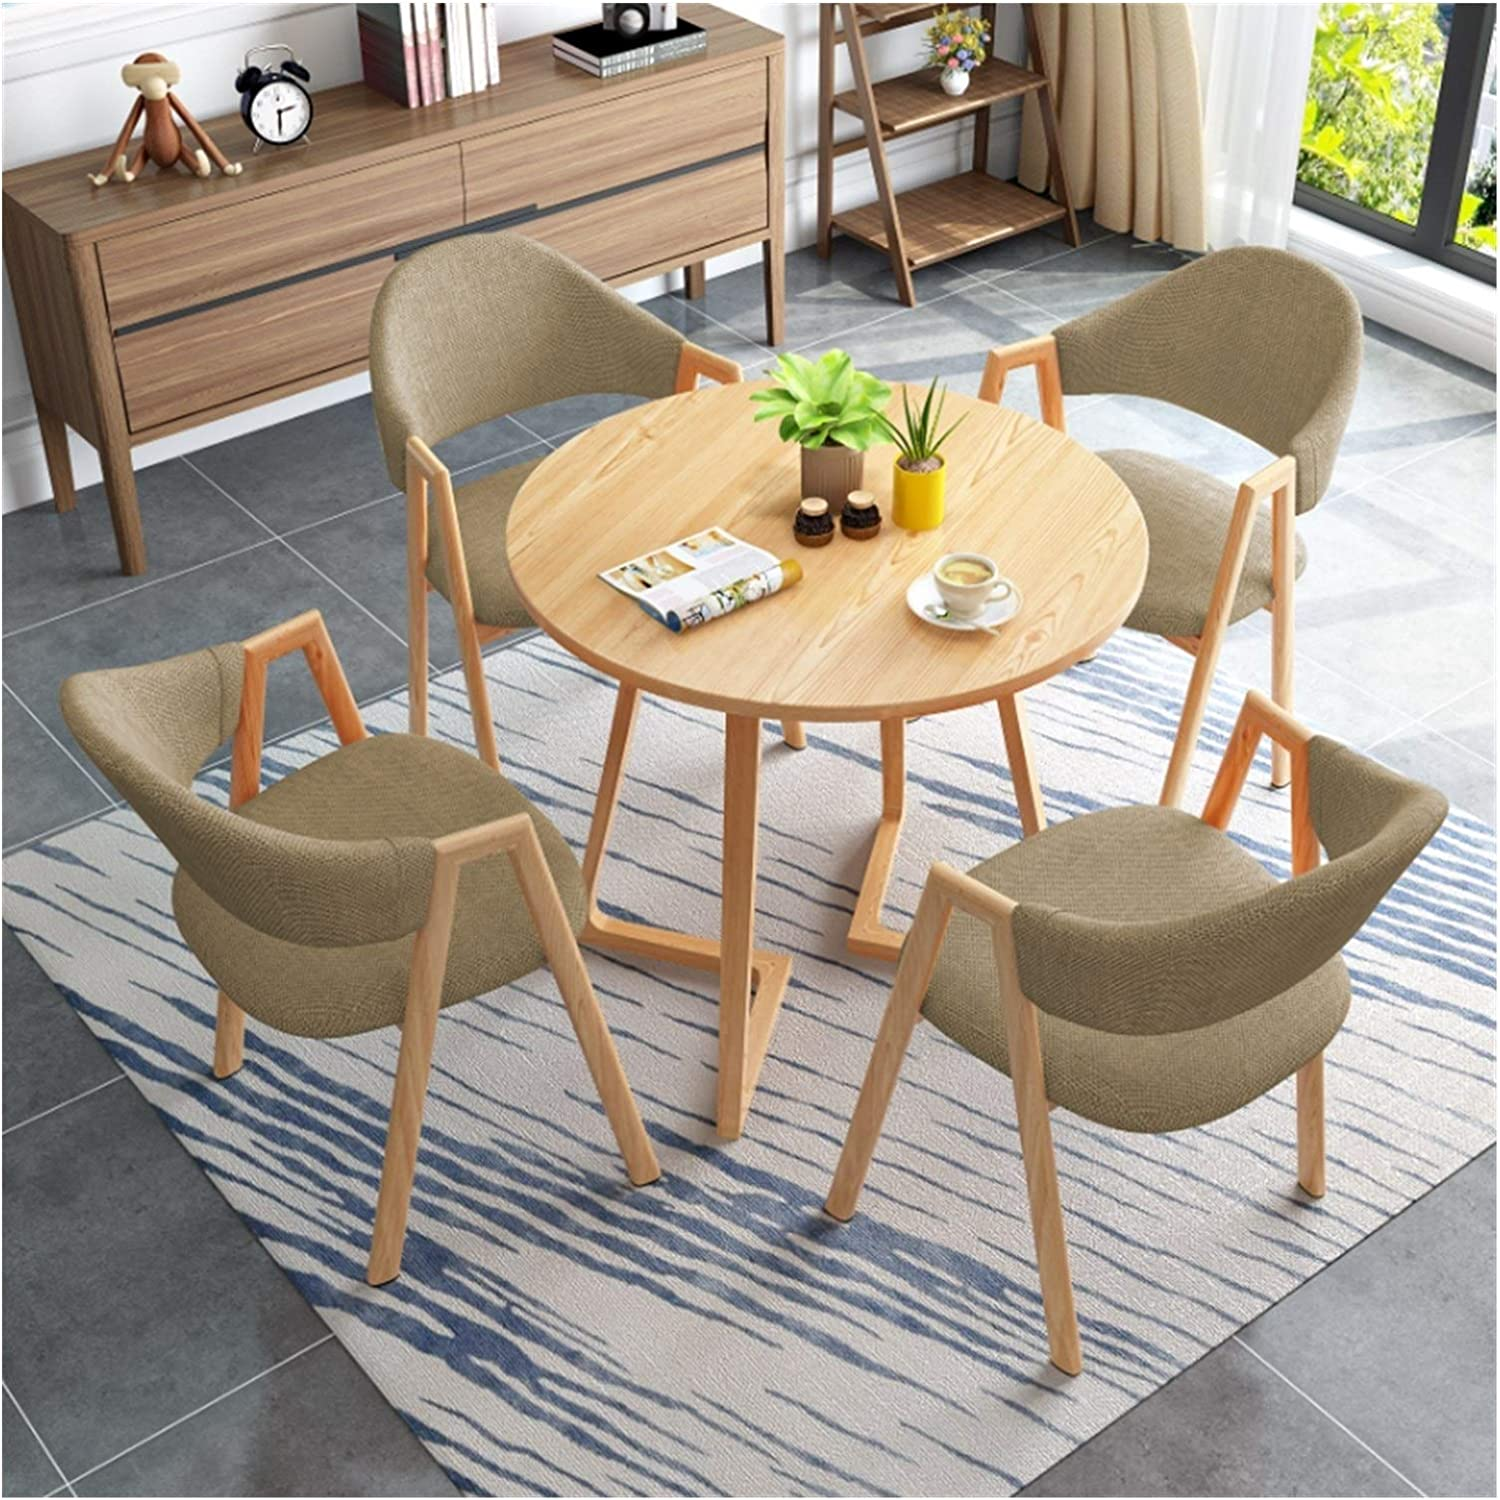 WANGLX Dining Table Set for quality assurance Tabl Max 78% OFF Room Kitchen Modern and